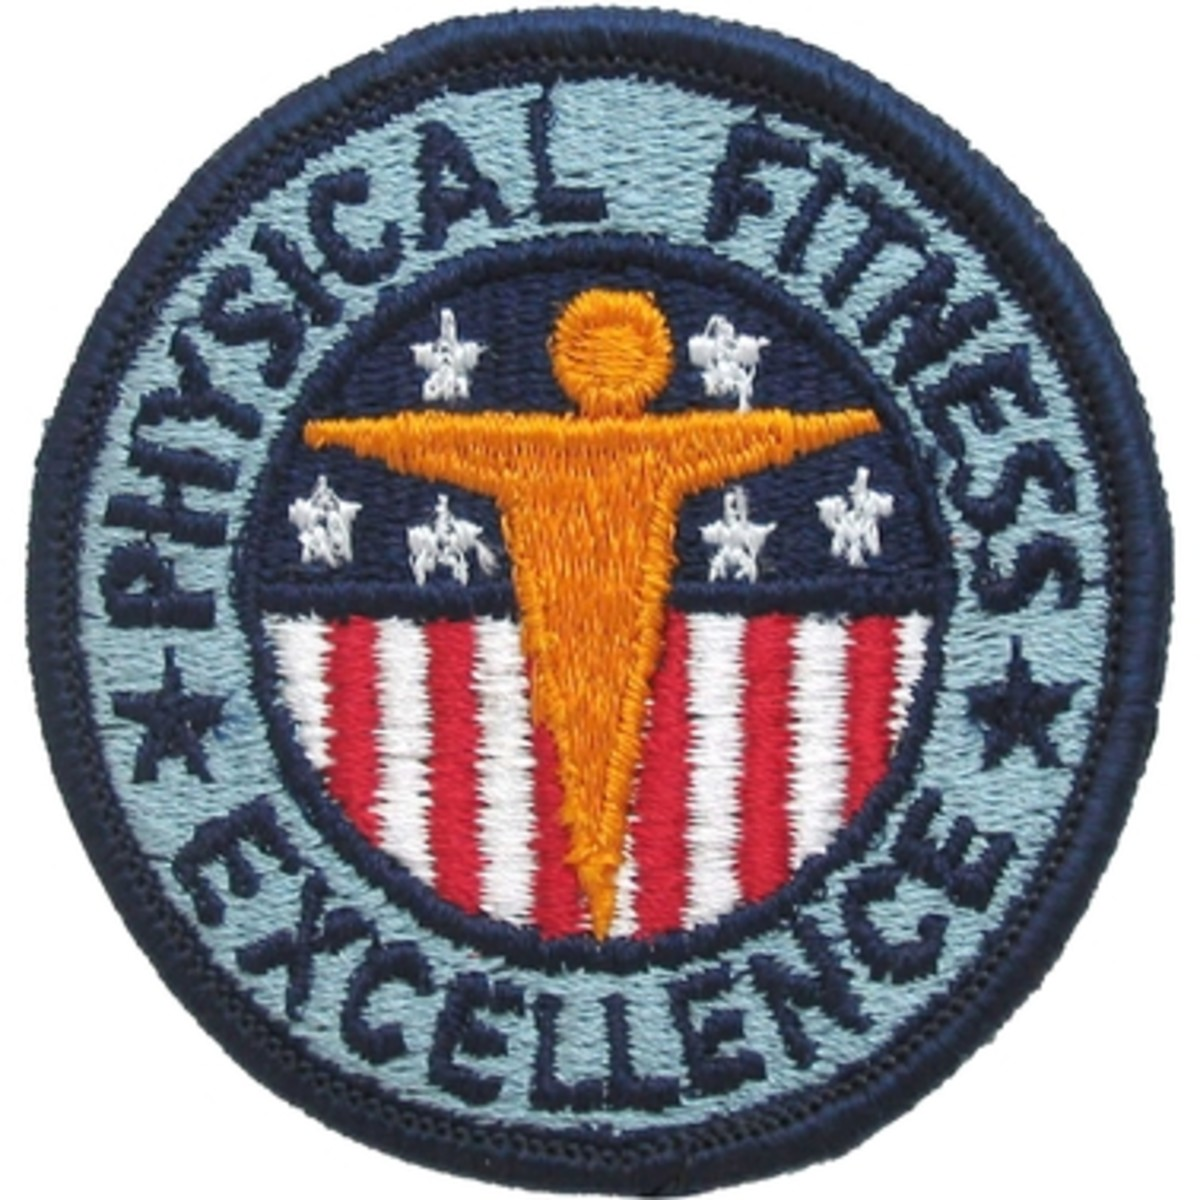 Army Physical Fitness Excellence Badge